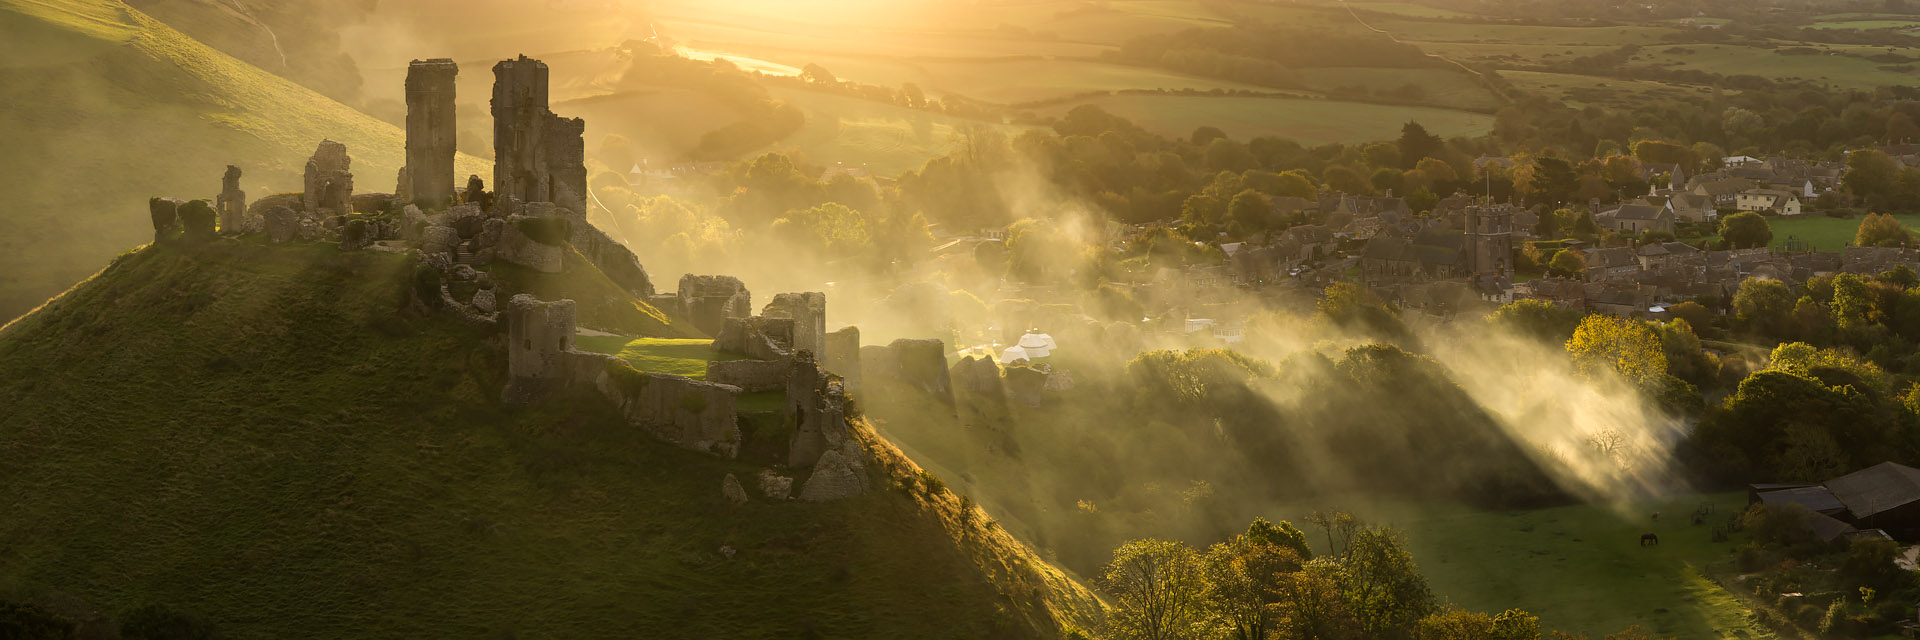 Corfe Castle by David Briard